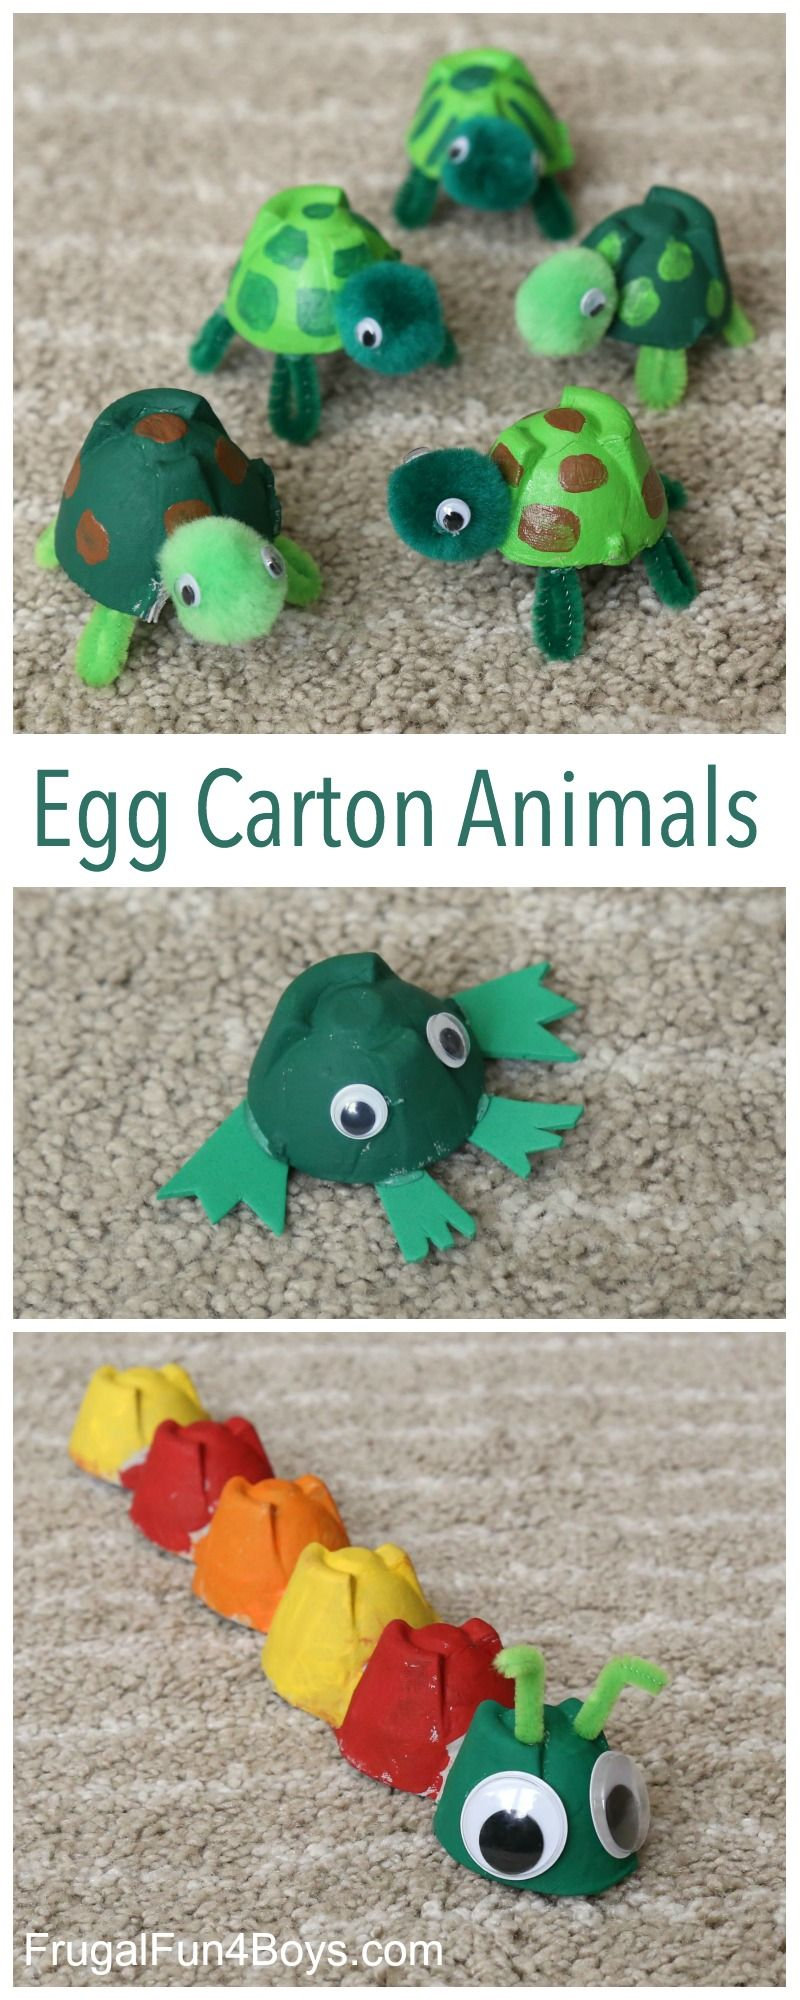 20 Creative Ways To Recycle Egg Cartons For Greener Earth Pondic Fun Projects For Kids Daycare Crafts Turtle Crafts